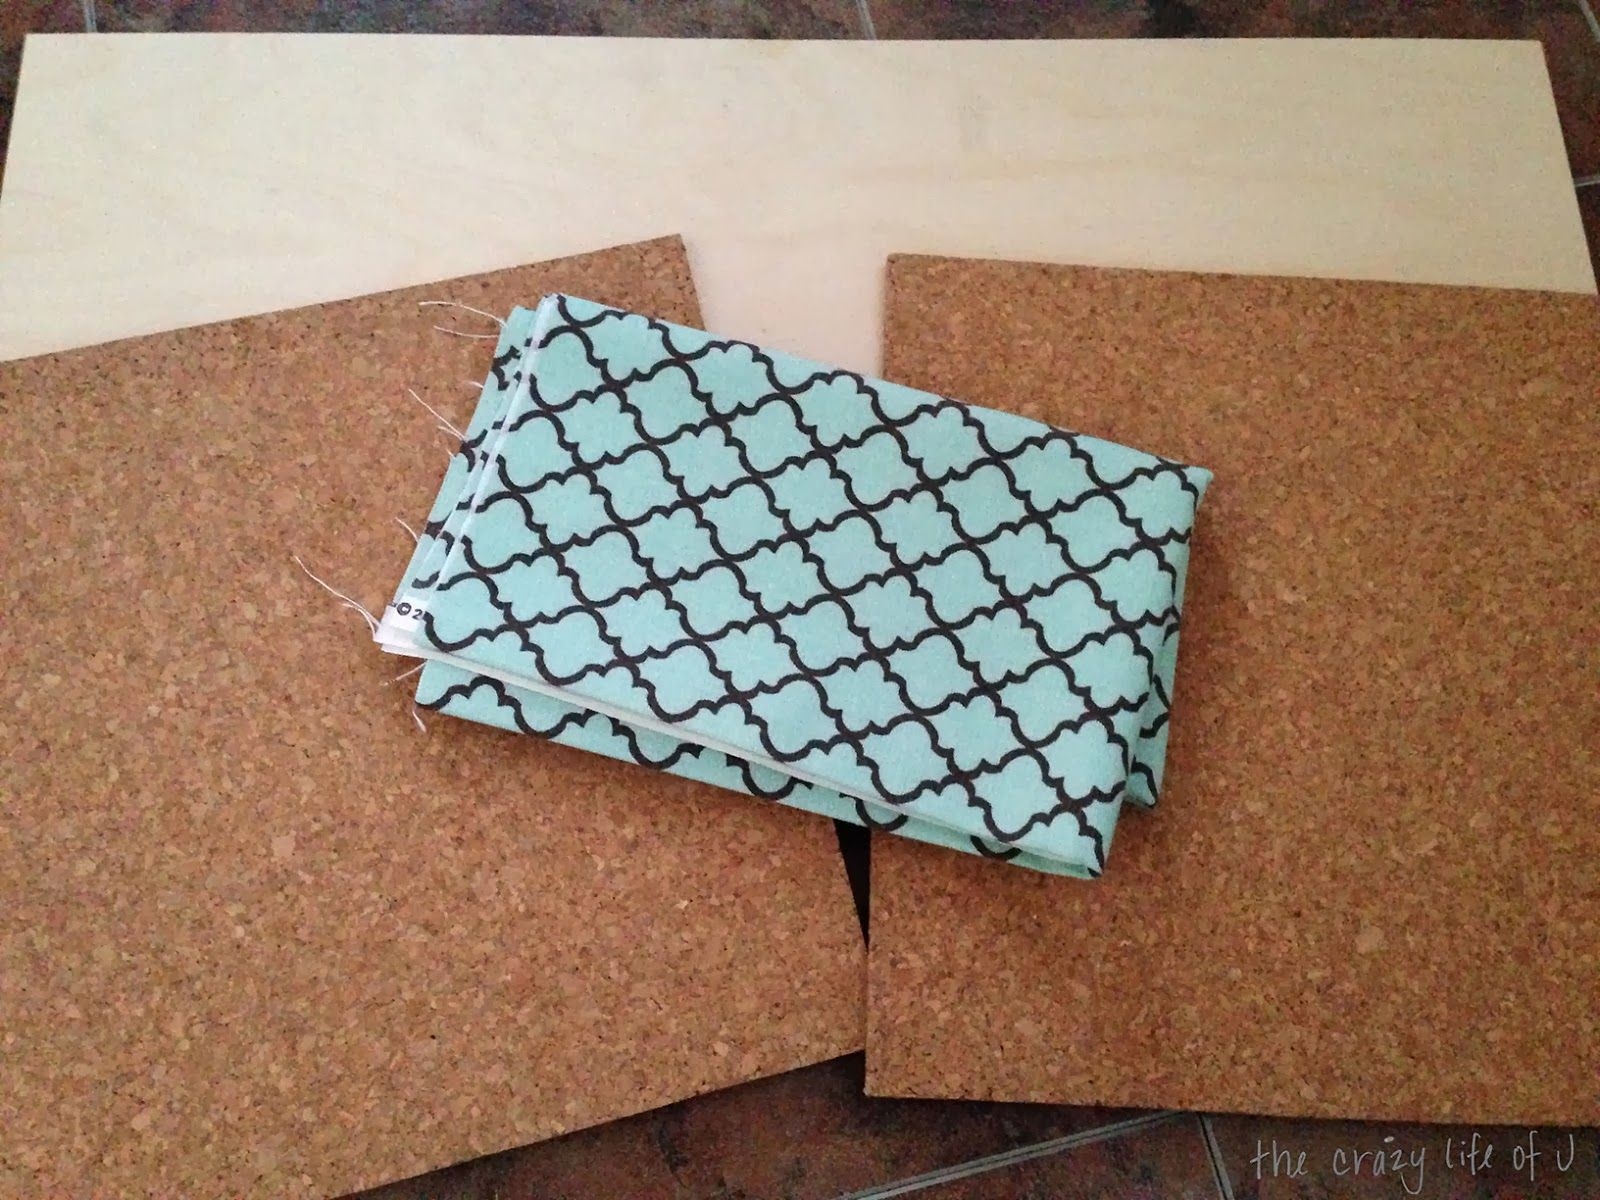 25 unique cork board projects ideas on pinterest large for Diy fabric bulletin board ideas